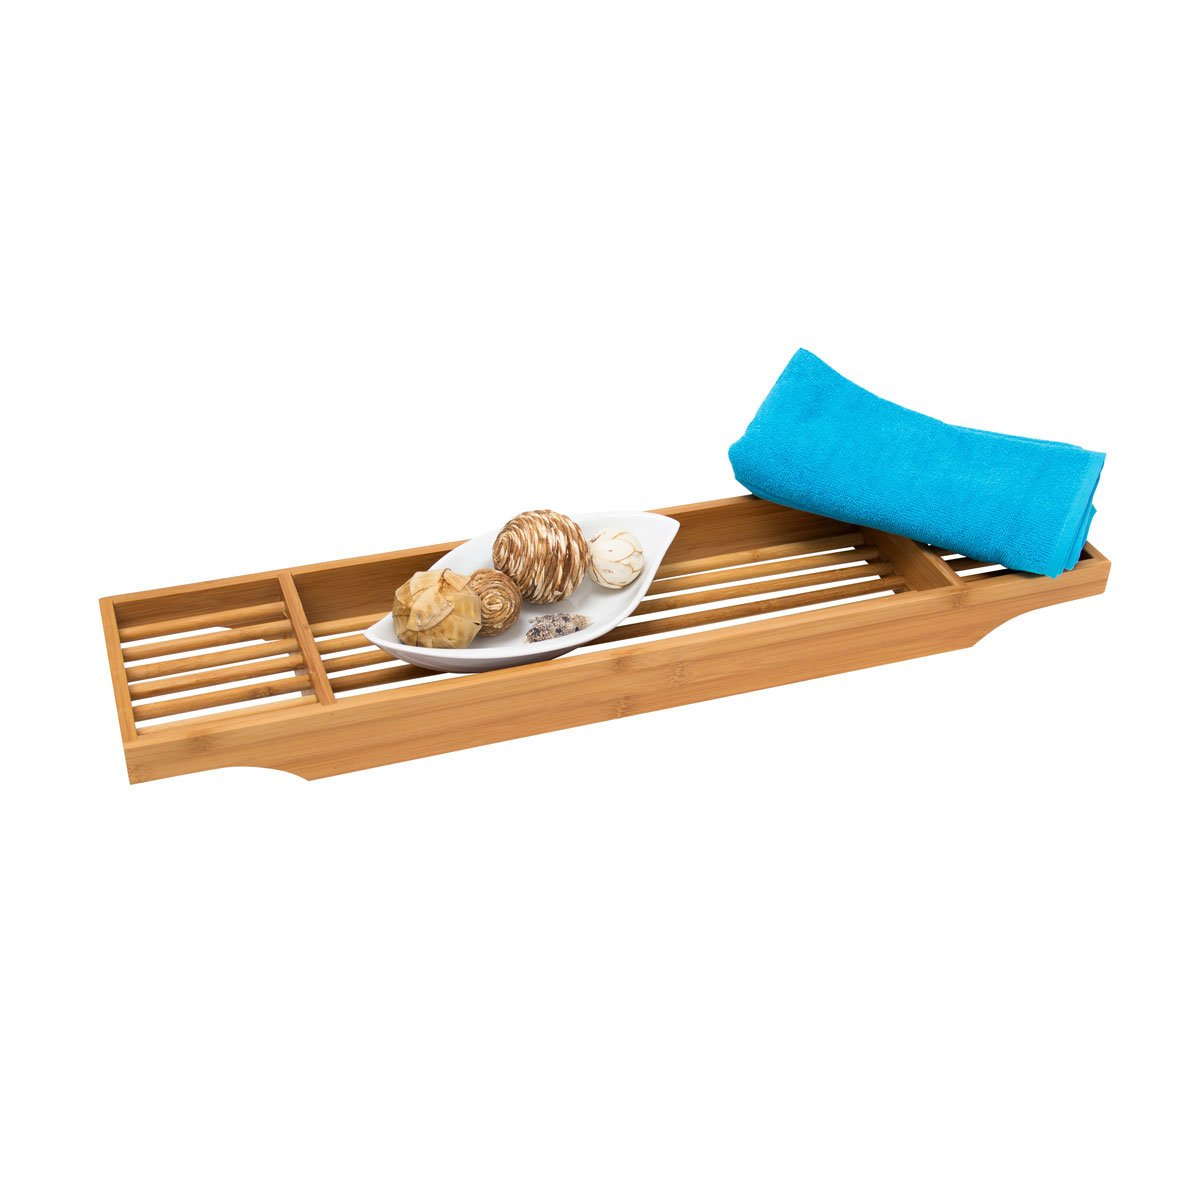 Relaxdays Bamboo Bathtub Tray with 3 Compartments, 5.5 x 70 x 16.5 cm, Decorative Wooden Bath Caddy, Brown 10019026